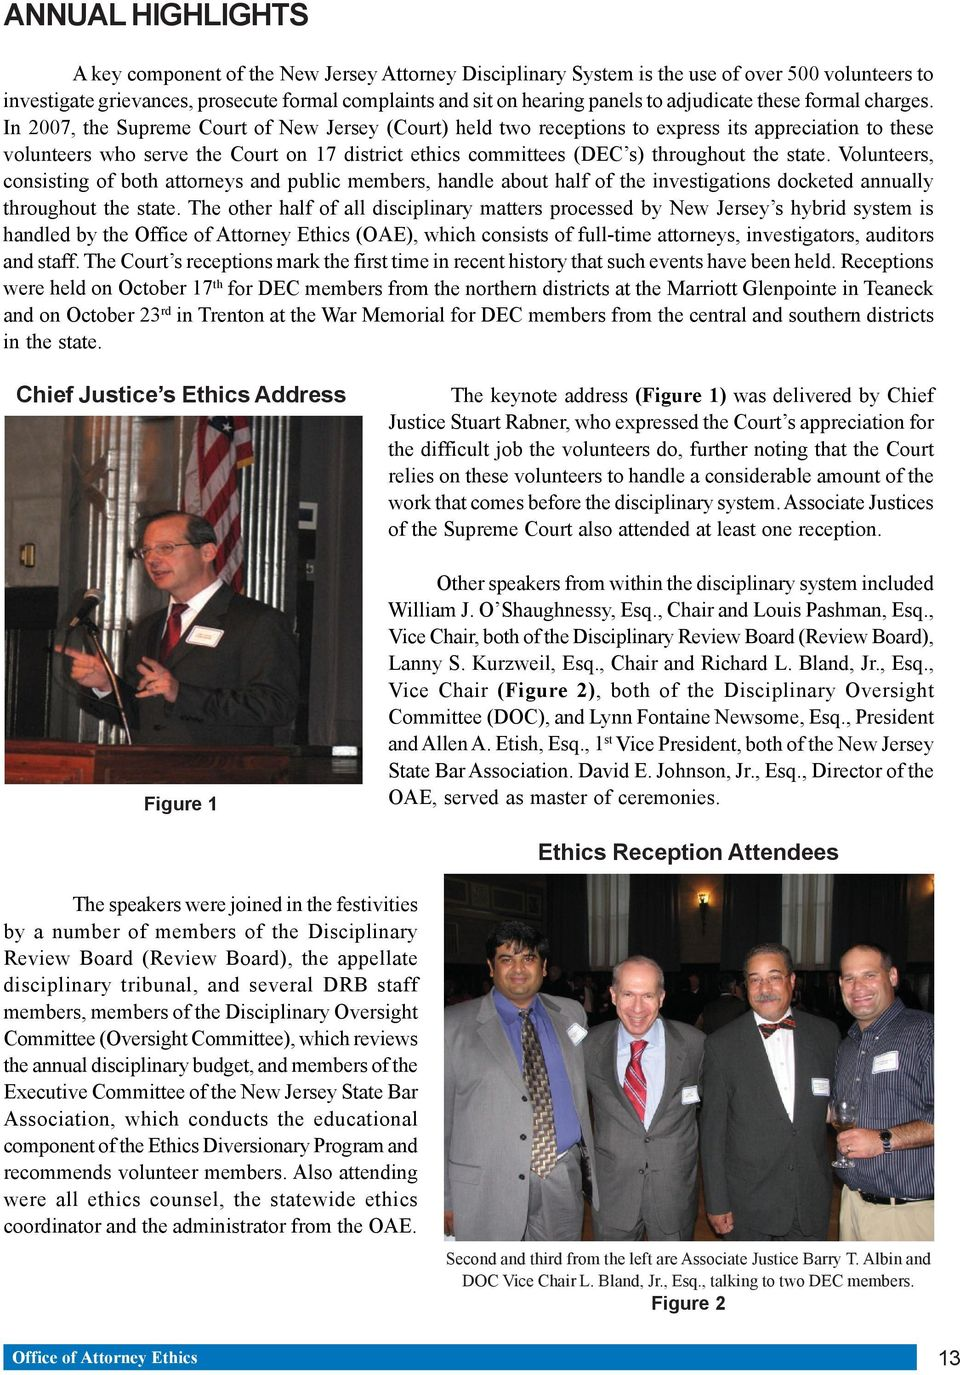 In 2007, the Supreme Court of New Jersey (Court) held two receptions to express its appreciation to these volunteers who serve the Court on 17 district ethics committees (DEC s) throughout the state.